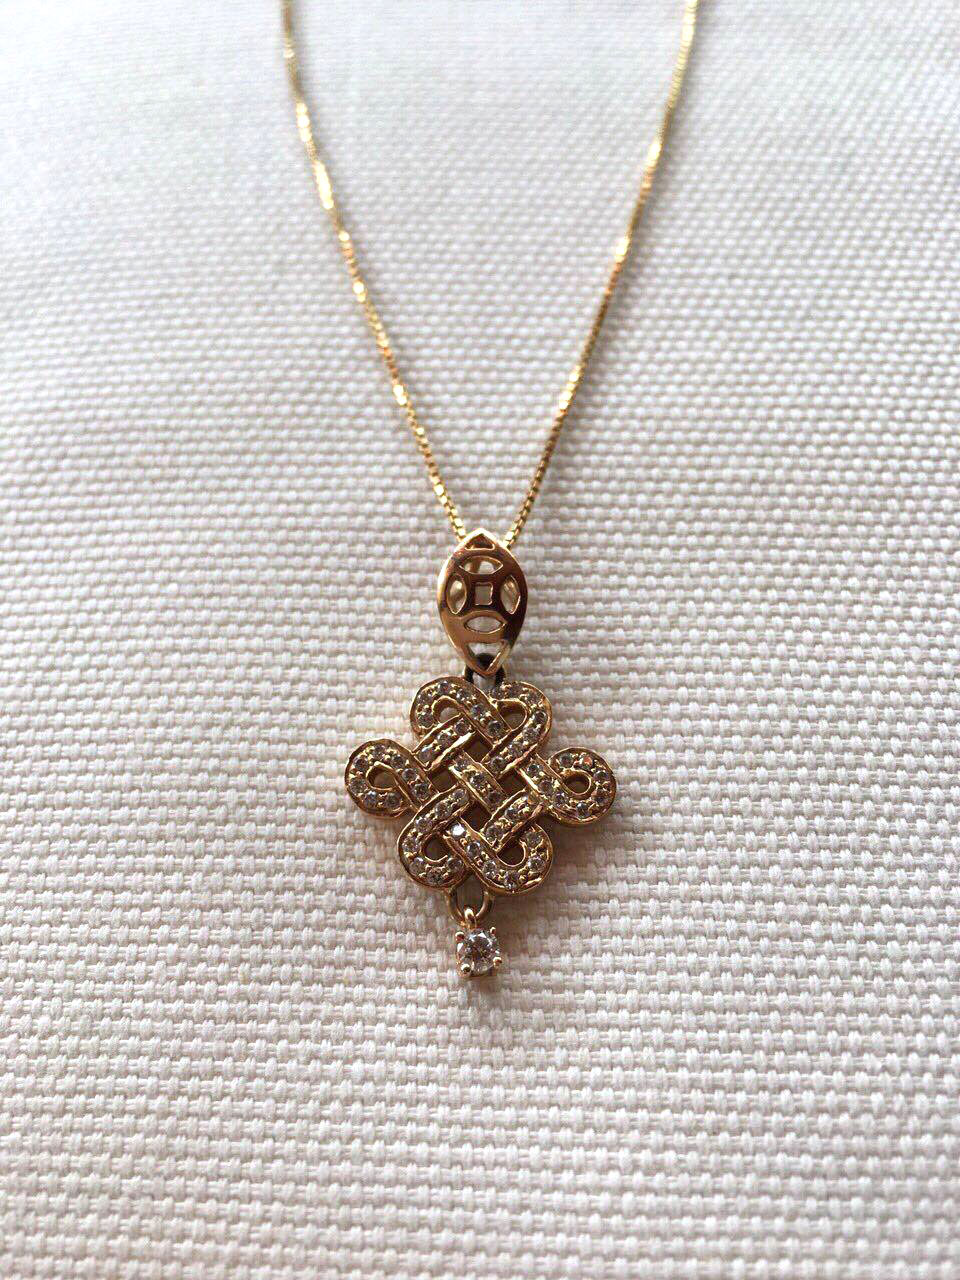 See the Gorgeous Buddhist Symbol Necklace Made for Princess Kate as a Gift from the Queen of Bhutan| The British Royals, The Royals, Kate Middleton